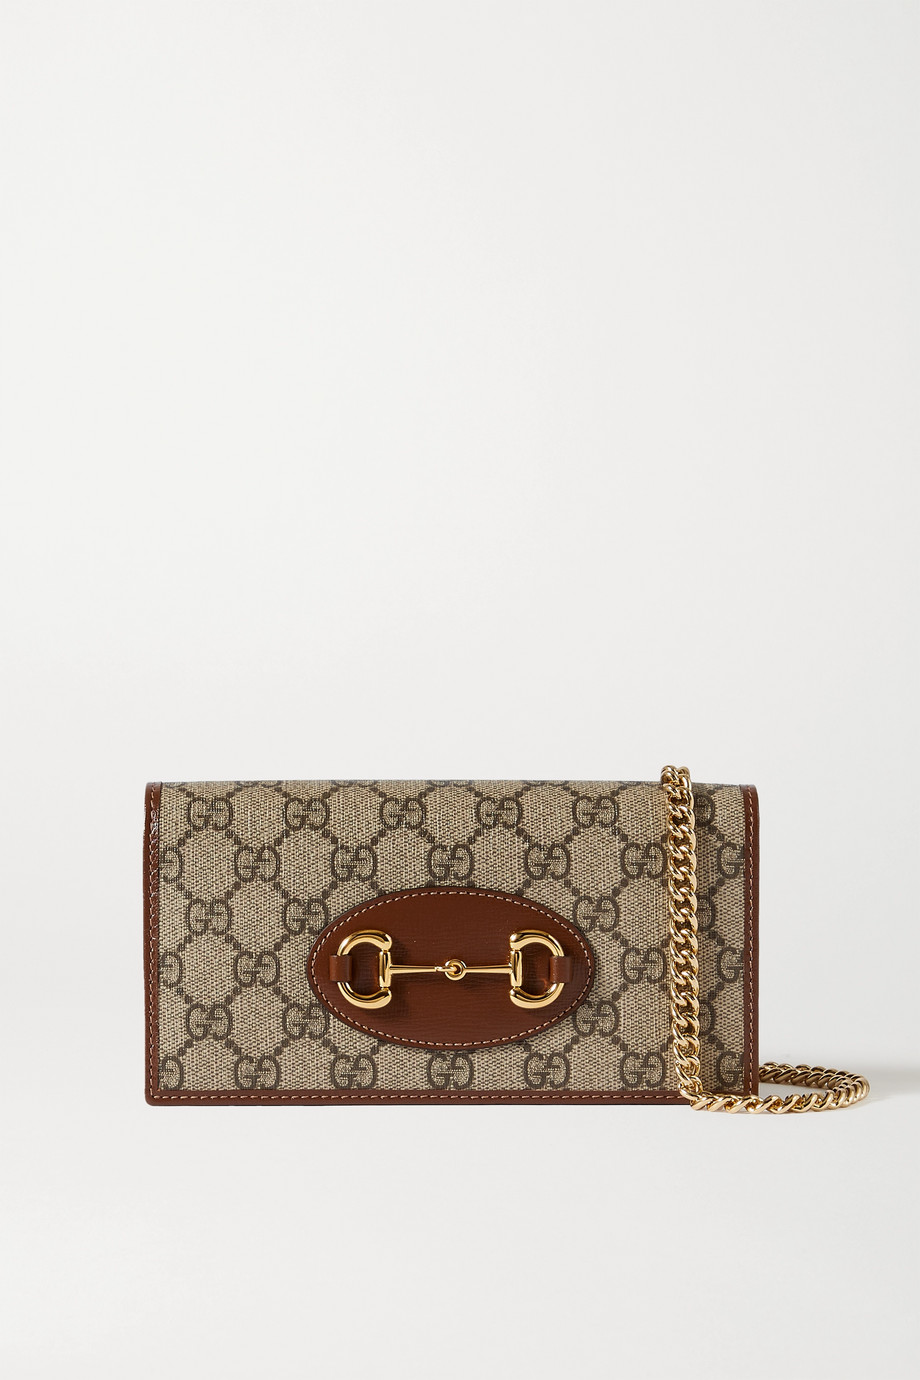 Gucci 1955 Horsebit textured leather-trimmed printed coated-canvas shoulder bag